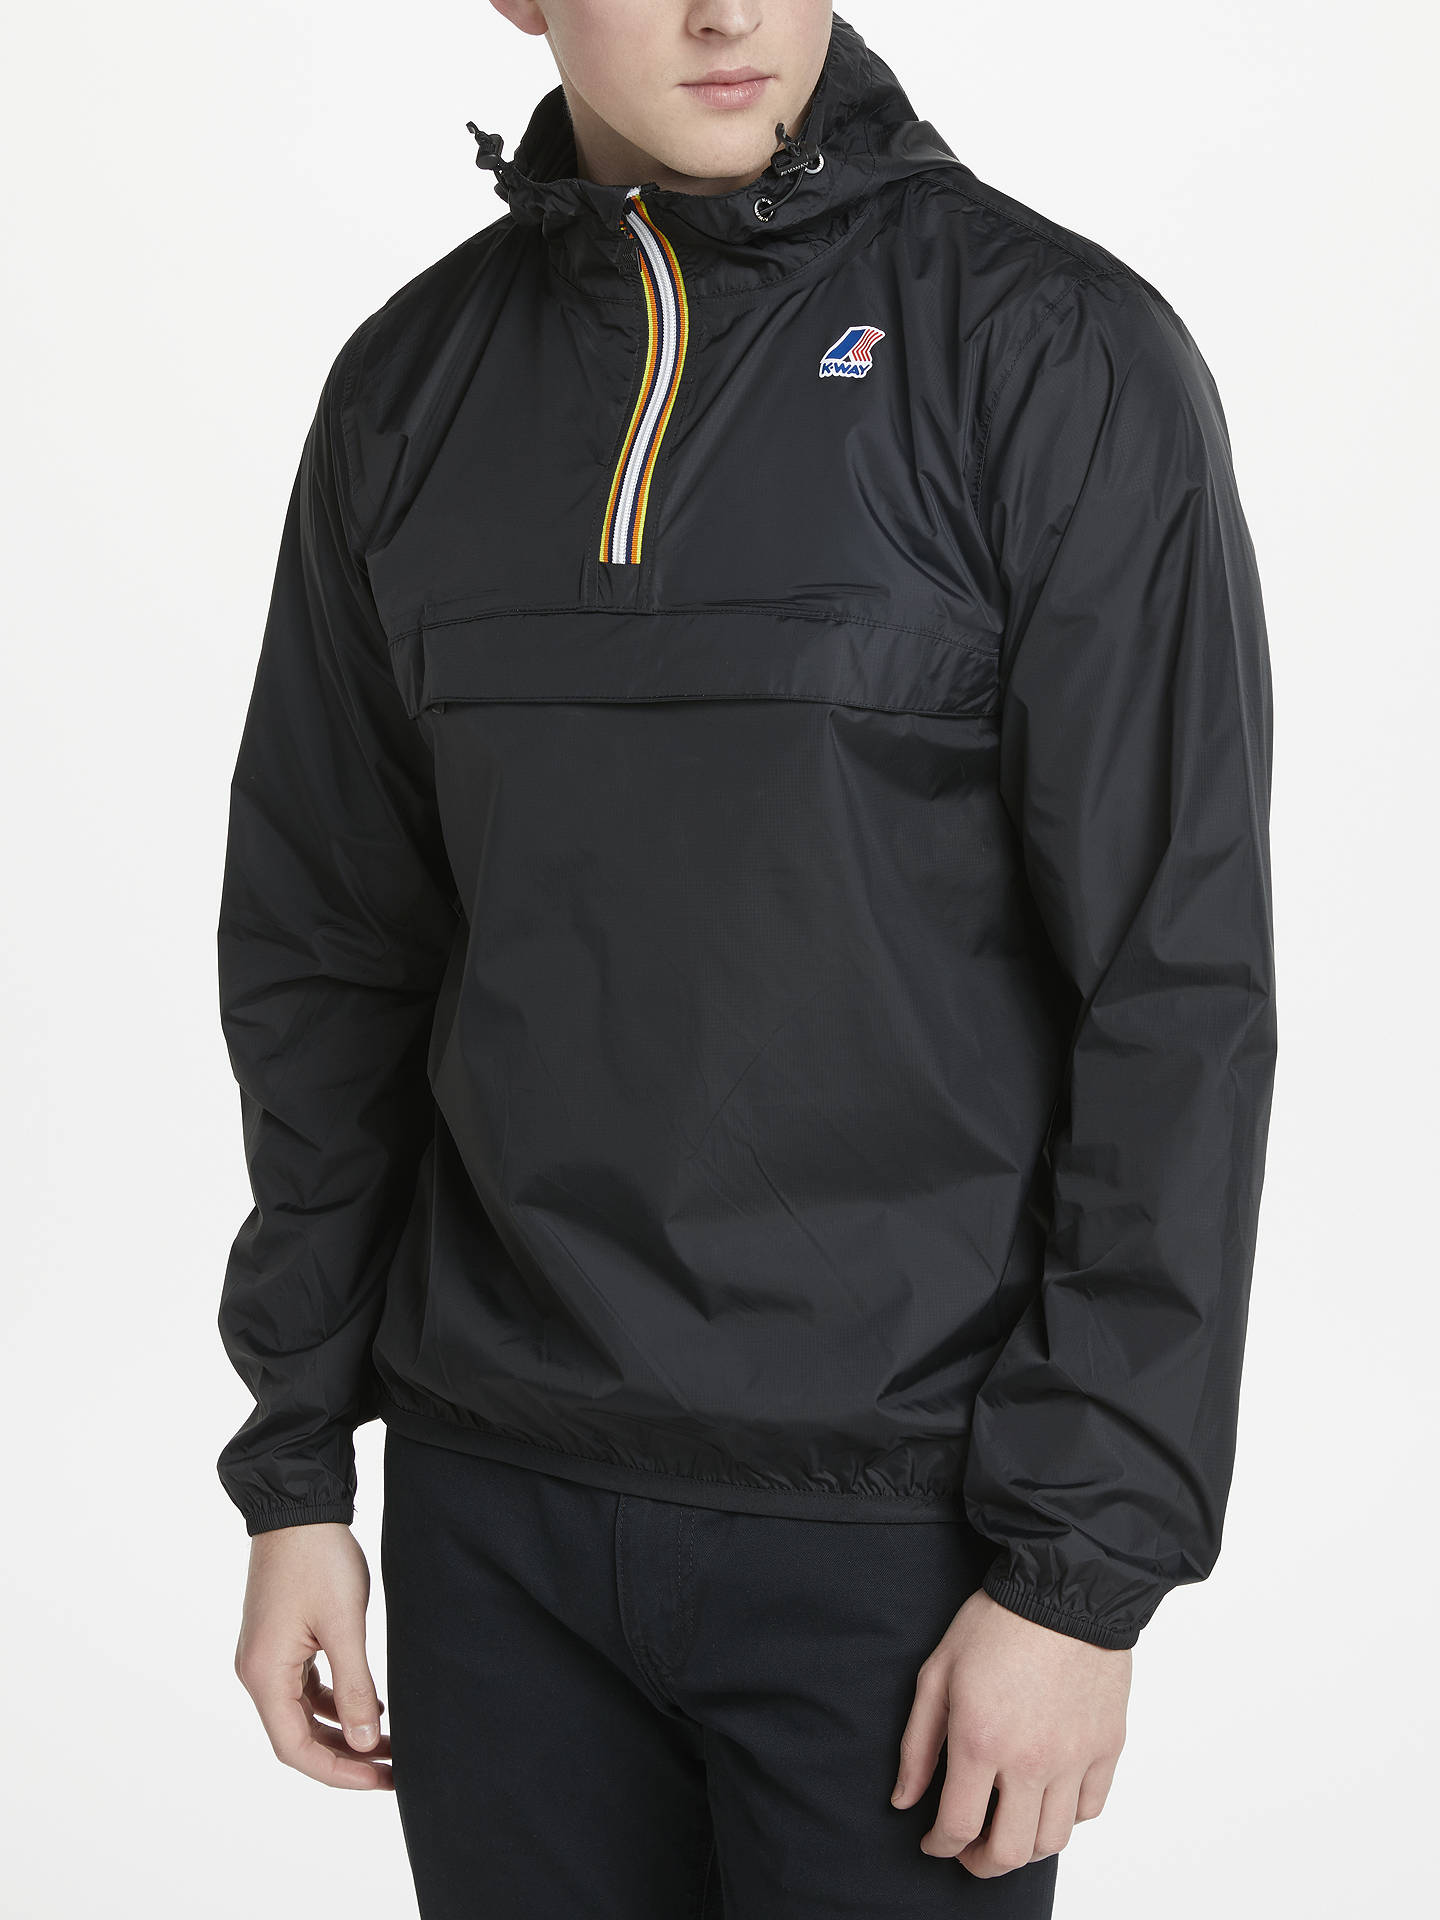 BuyK-Way Le Vrai Leon 3.0 Half Zip Pac-A-Mac, Black, S Online at johnlewis.com